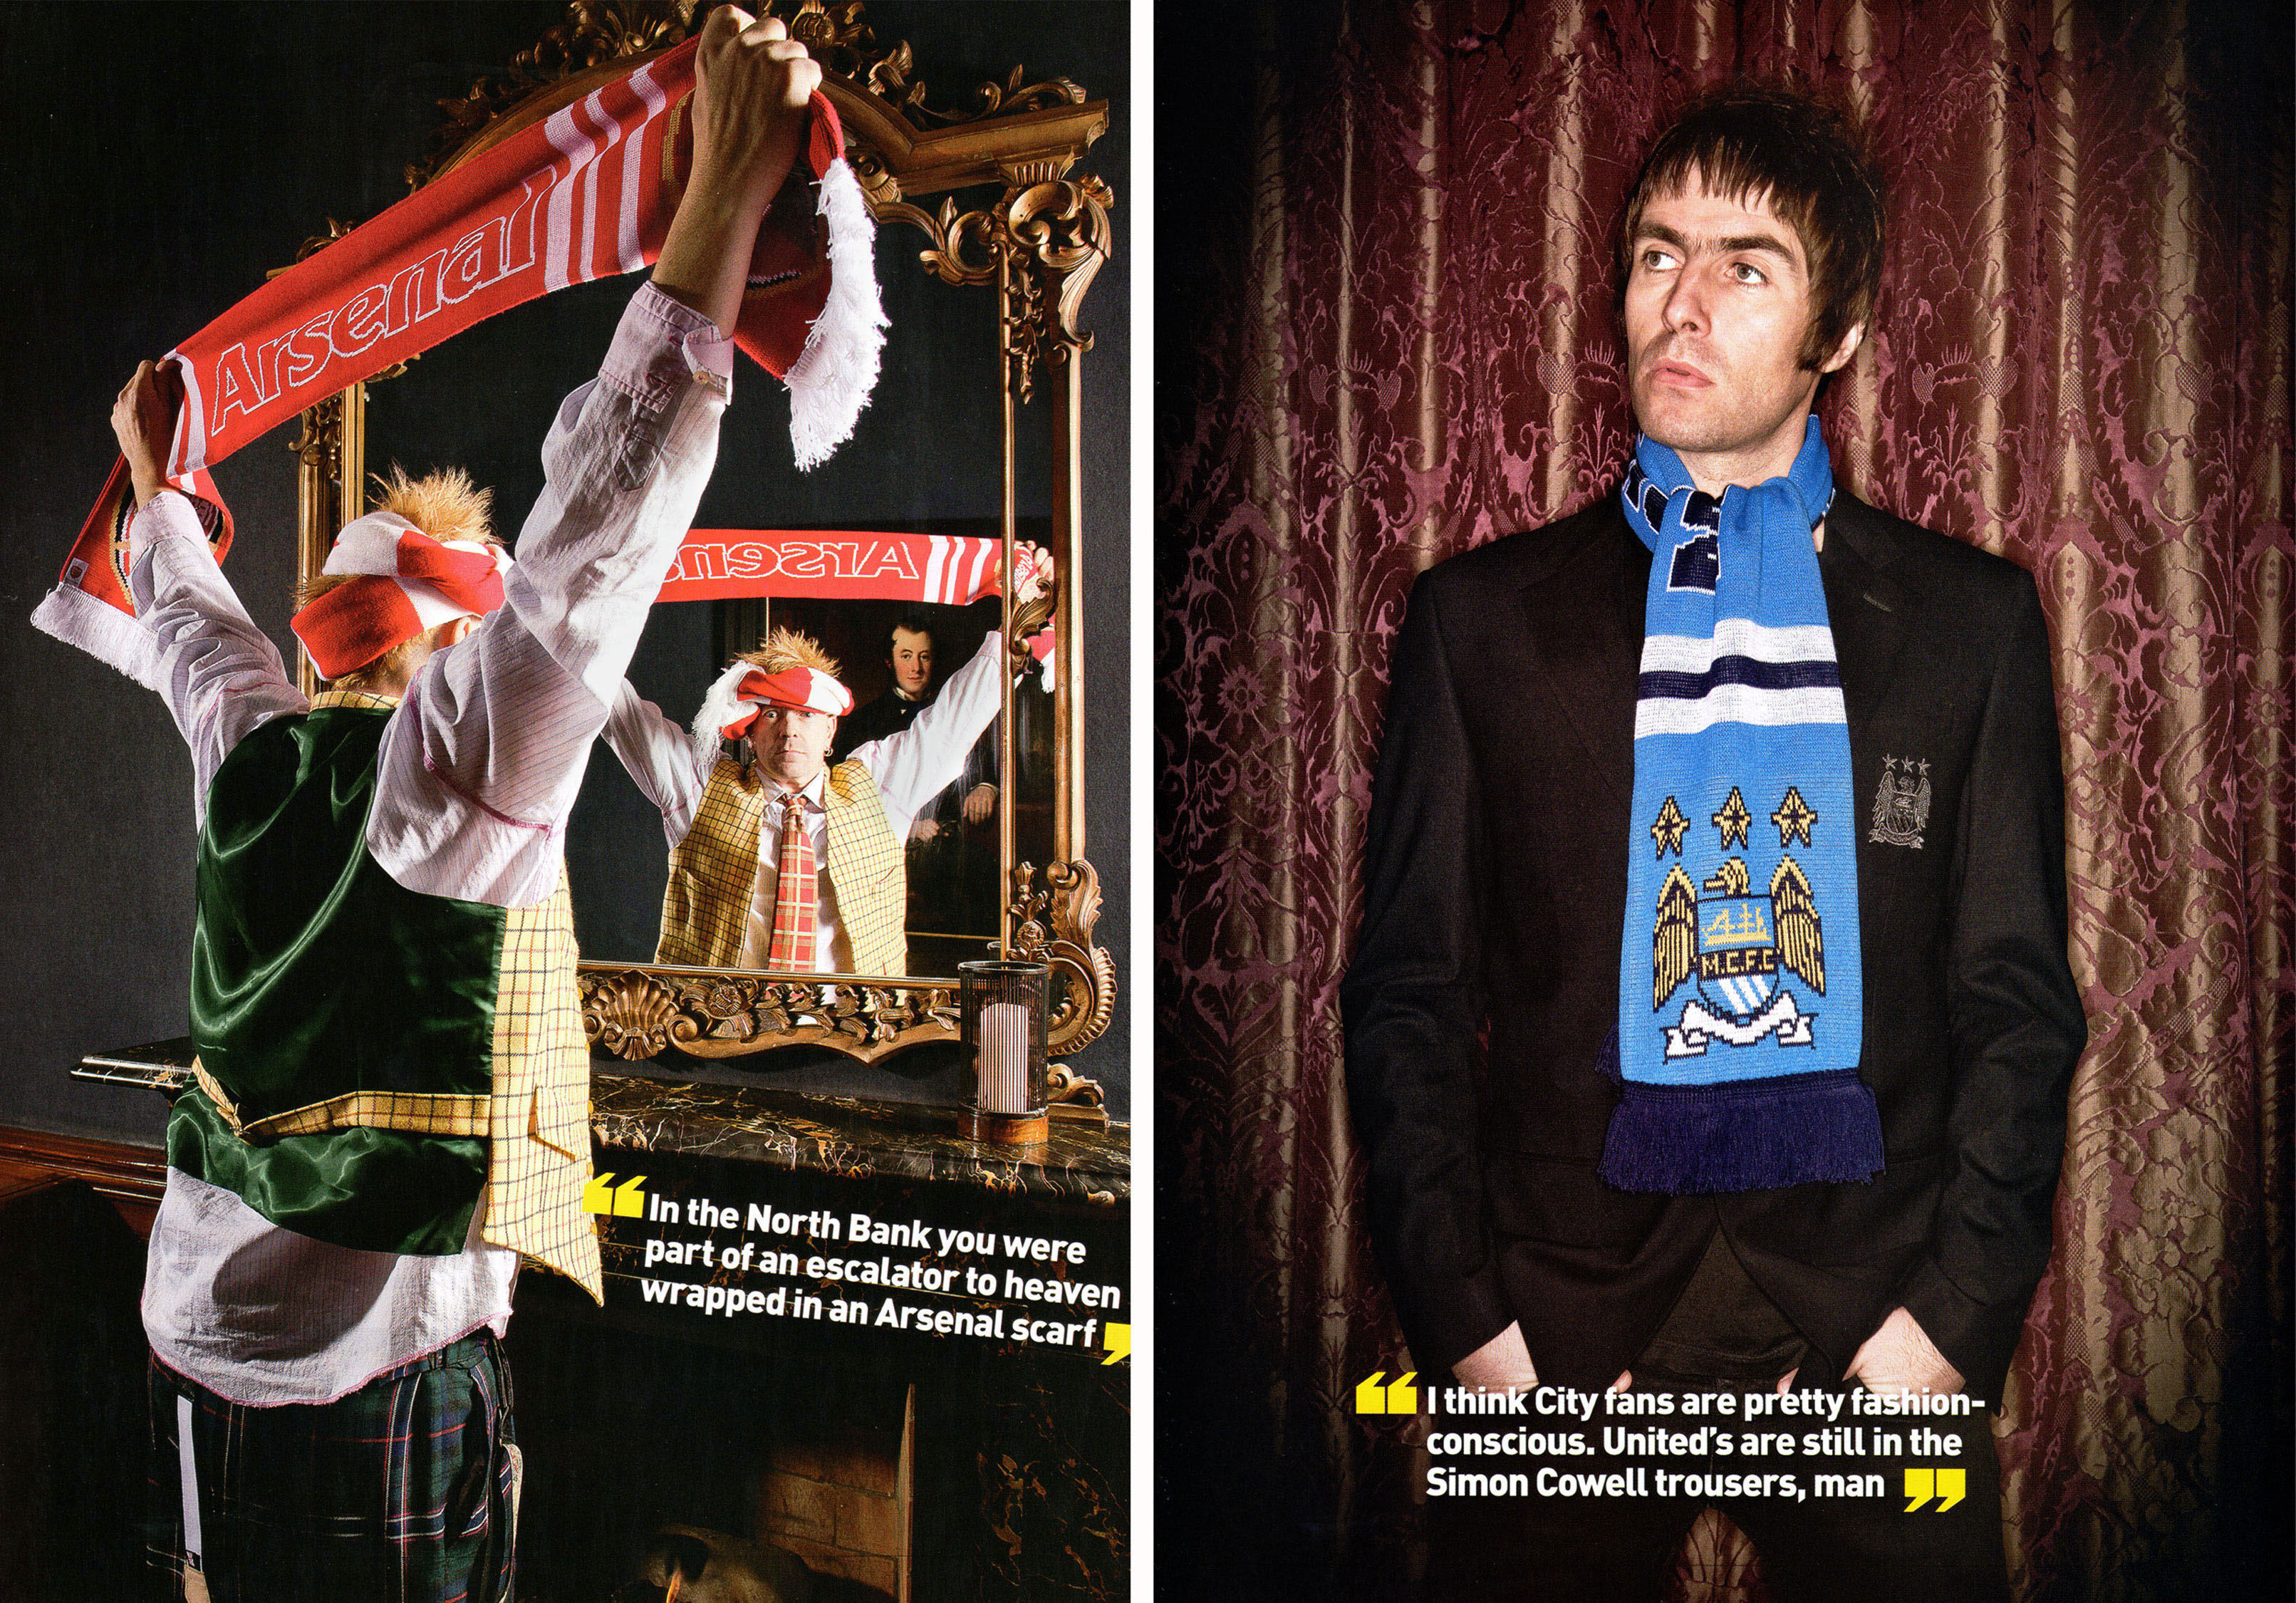 Famous fans Johnny Rotten Lydon of The Sex Pistos and pil and liam Gallagher of oasis with football scarves